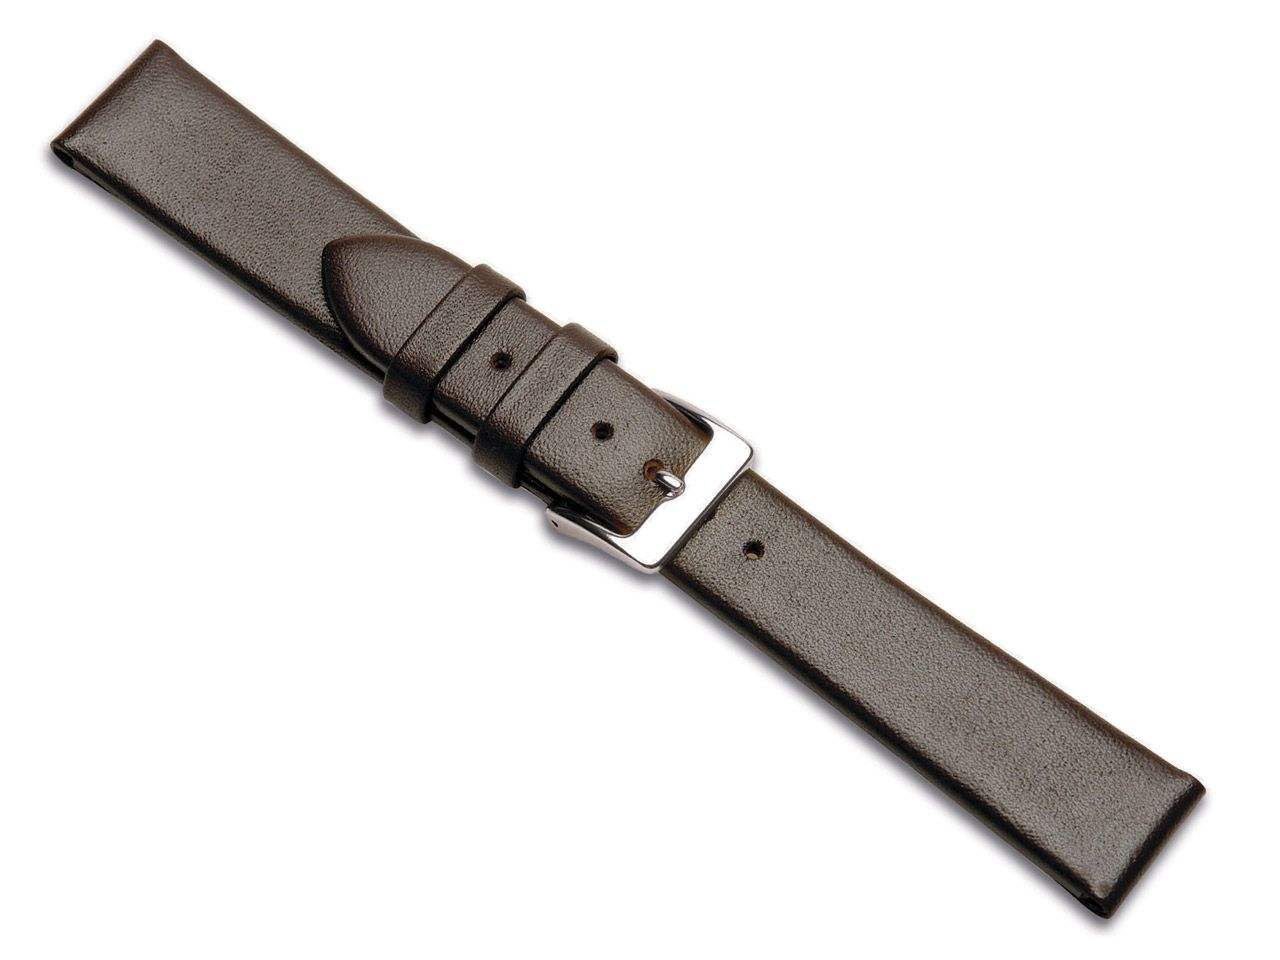 Bracelet montre en cuir de veau marron, 22 mm